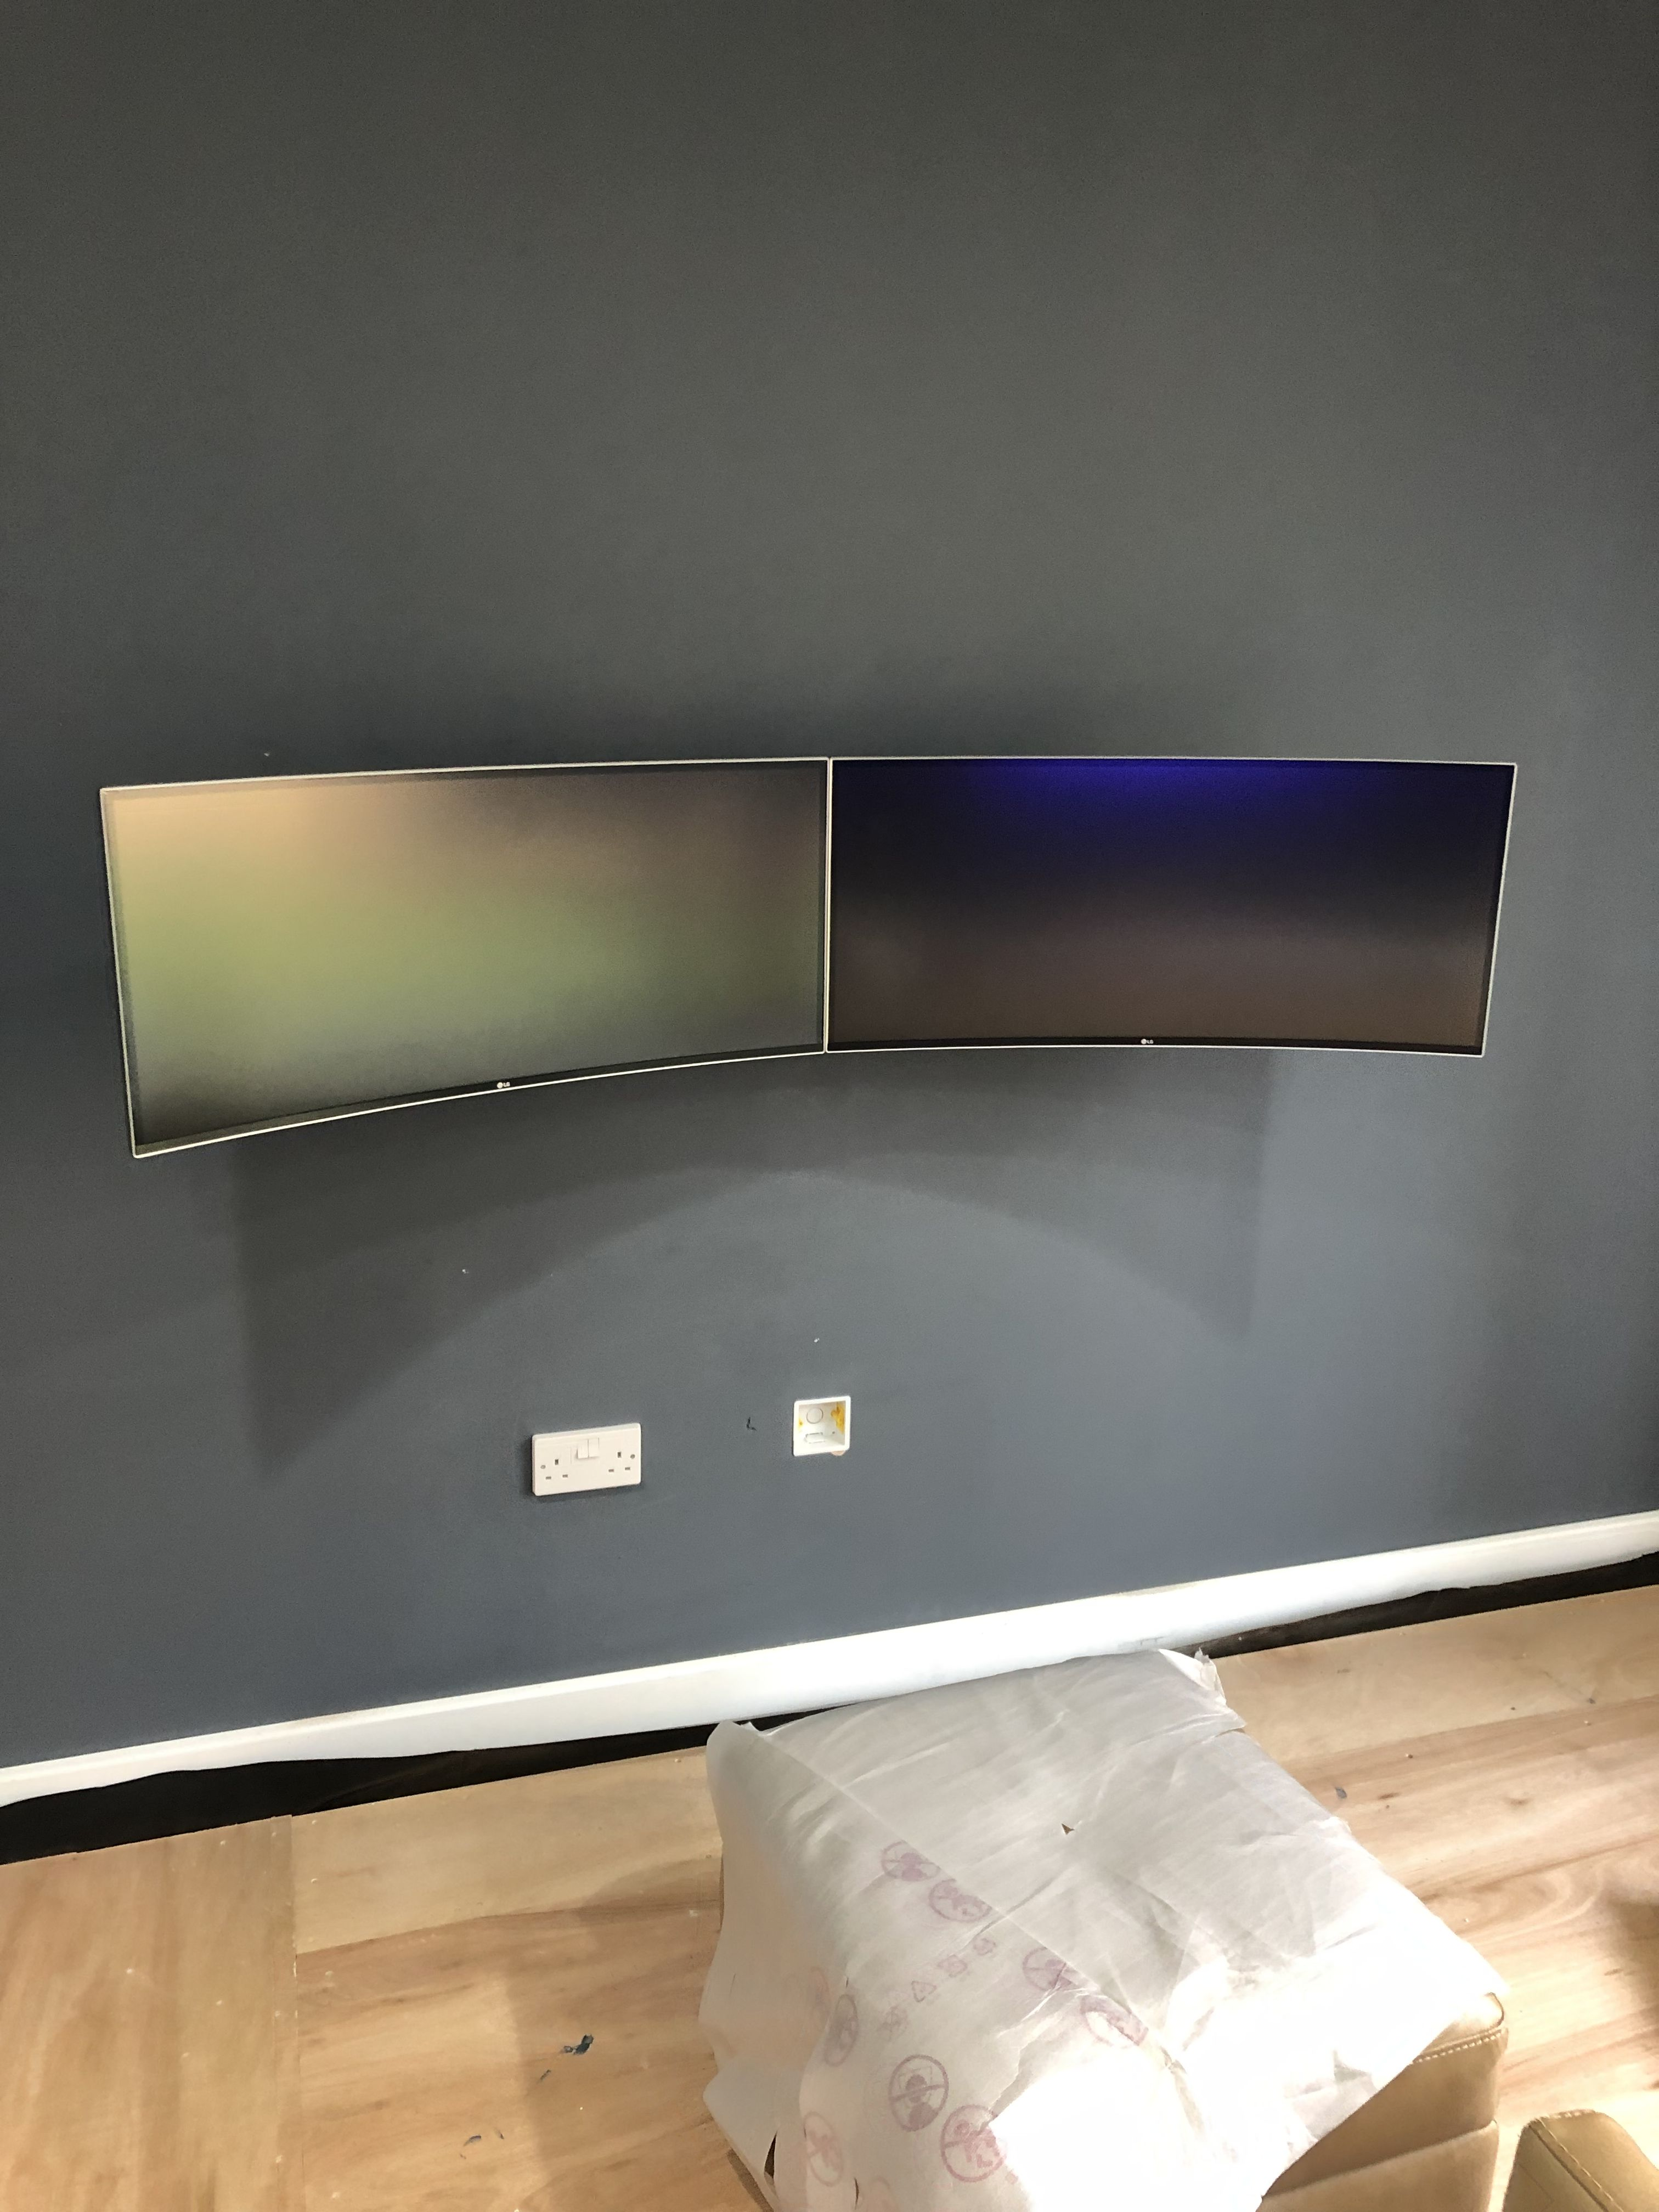 Dual Ultrawide Curved Wall Mounted Monitors Wall Mount Monitors Curved Walls Modern Home Office